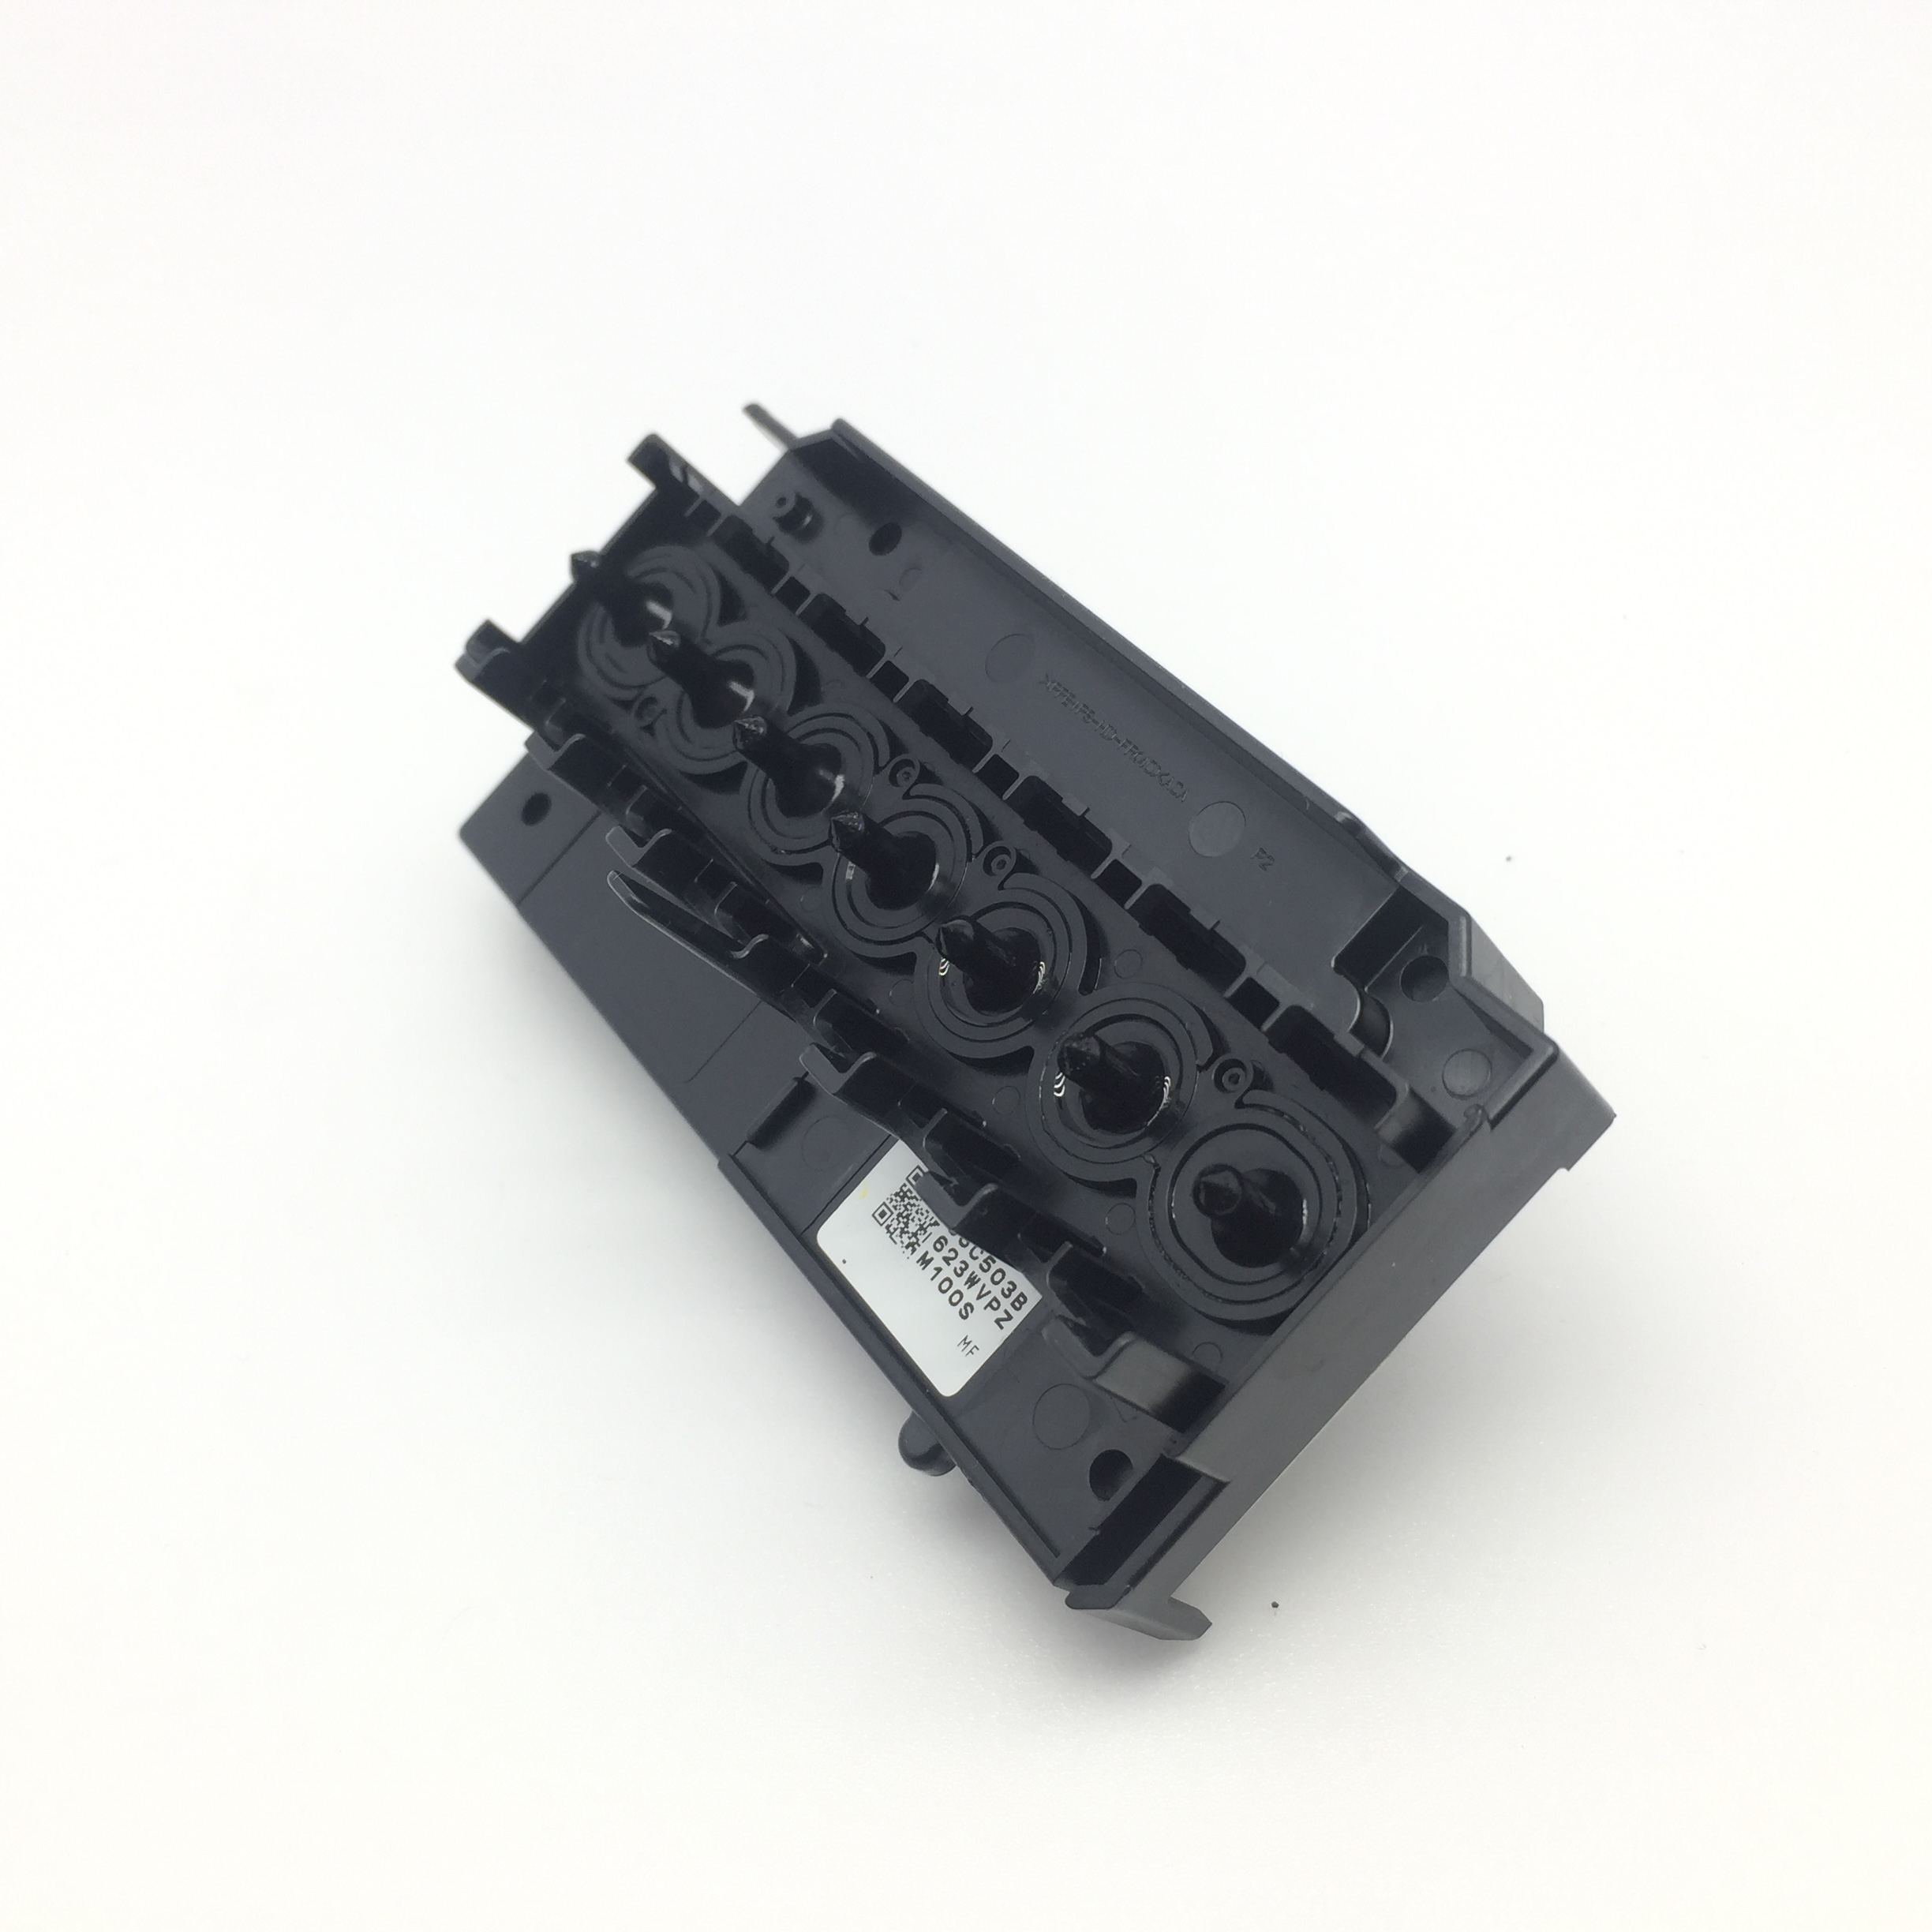 Truested Seller! High Quality And Cheaper Cost Printhead For Epson 7600 Printhead For EPSON 9600 Print Head For Epson Printer